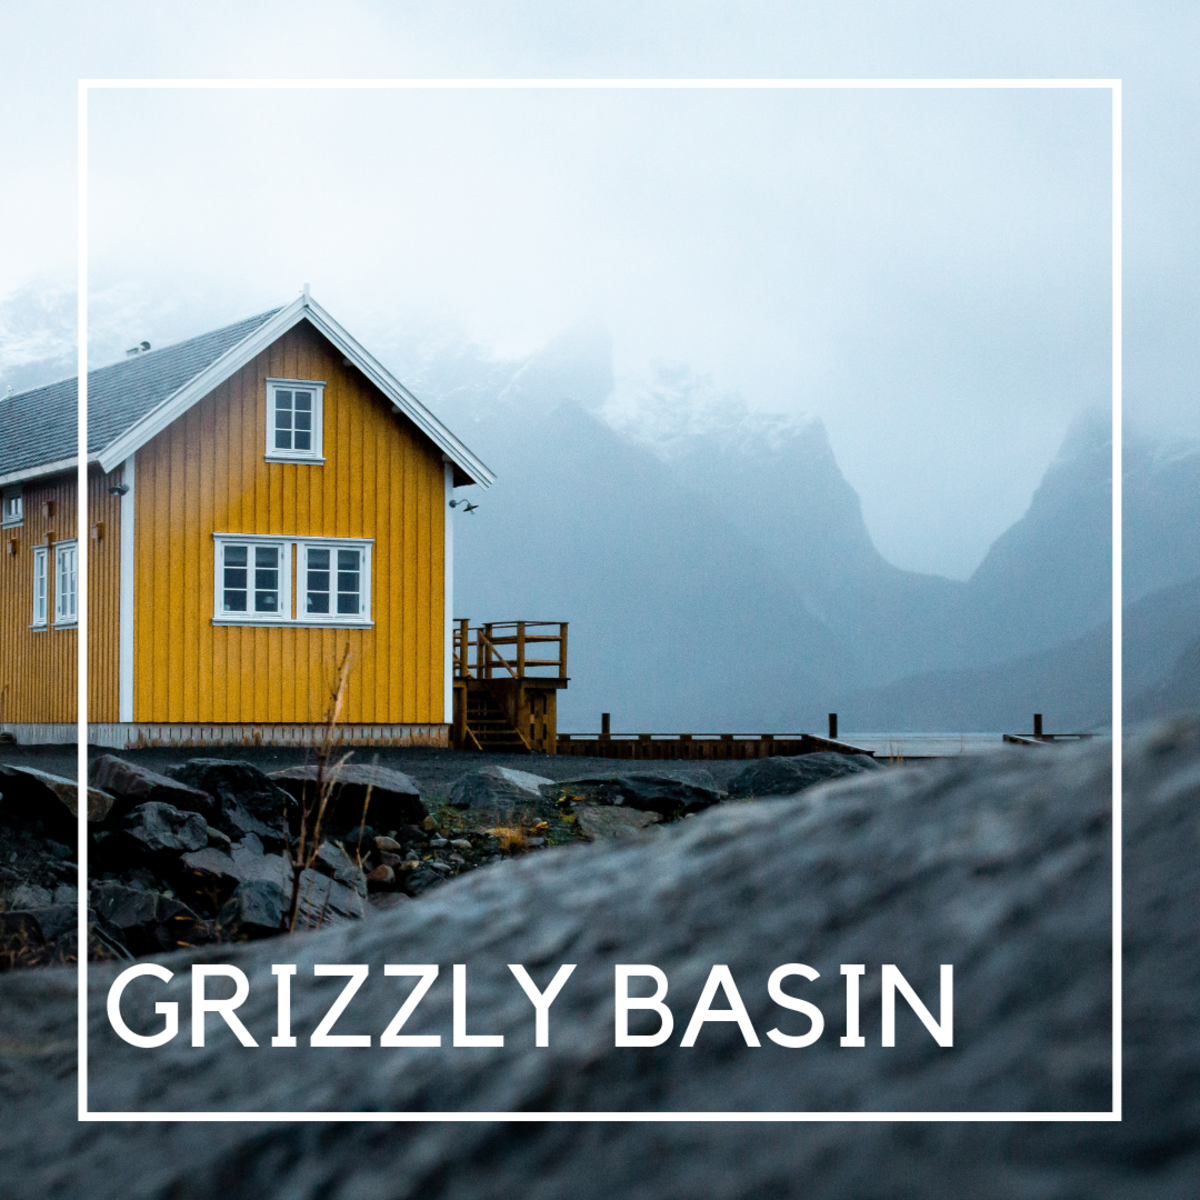 Grizzly Basin